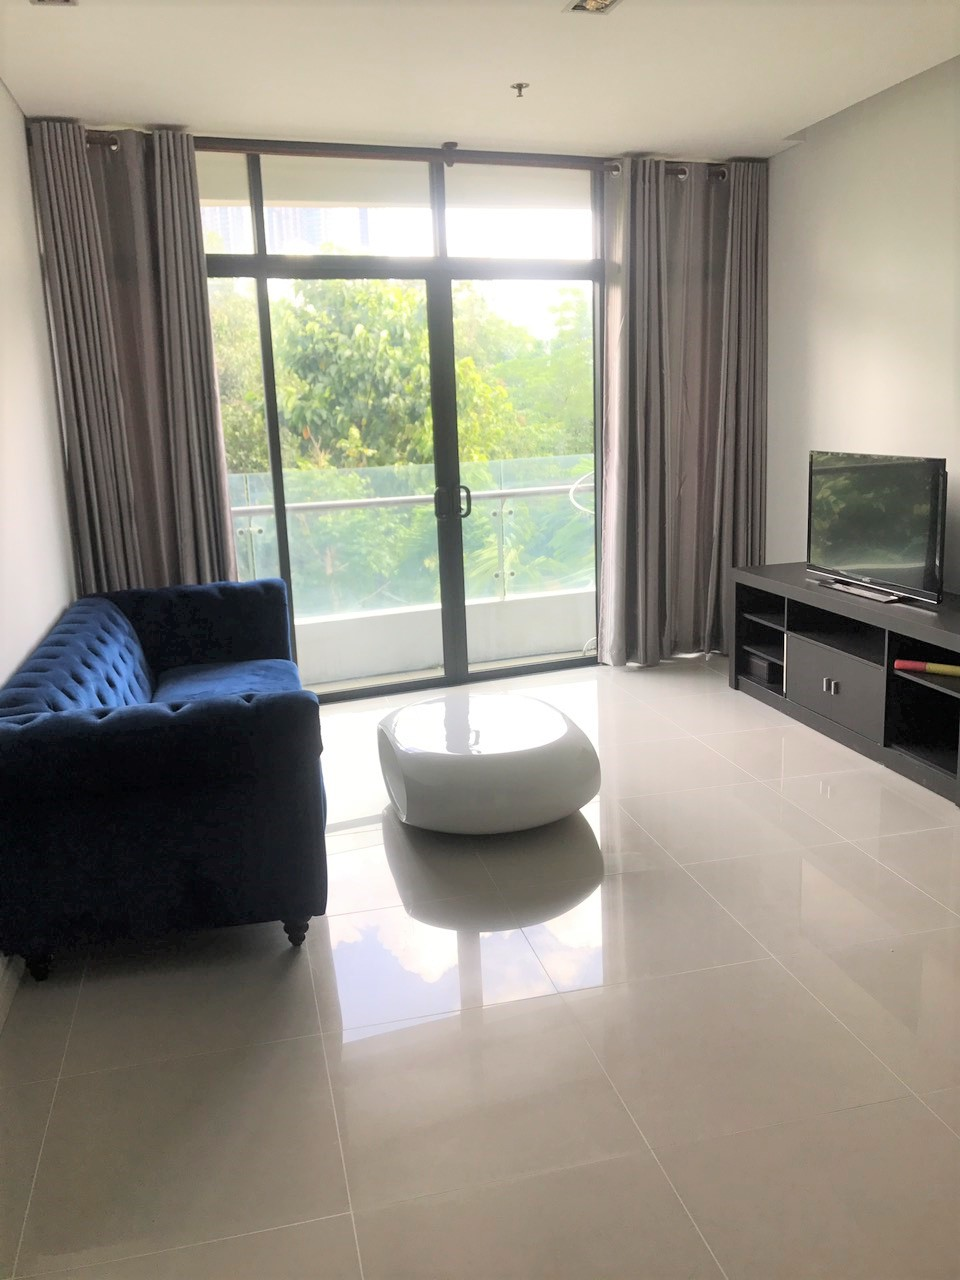 Apartment for rent BT102200 (4)